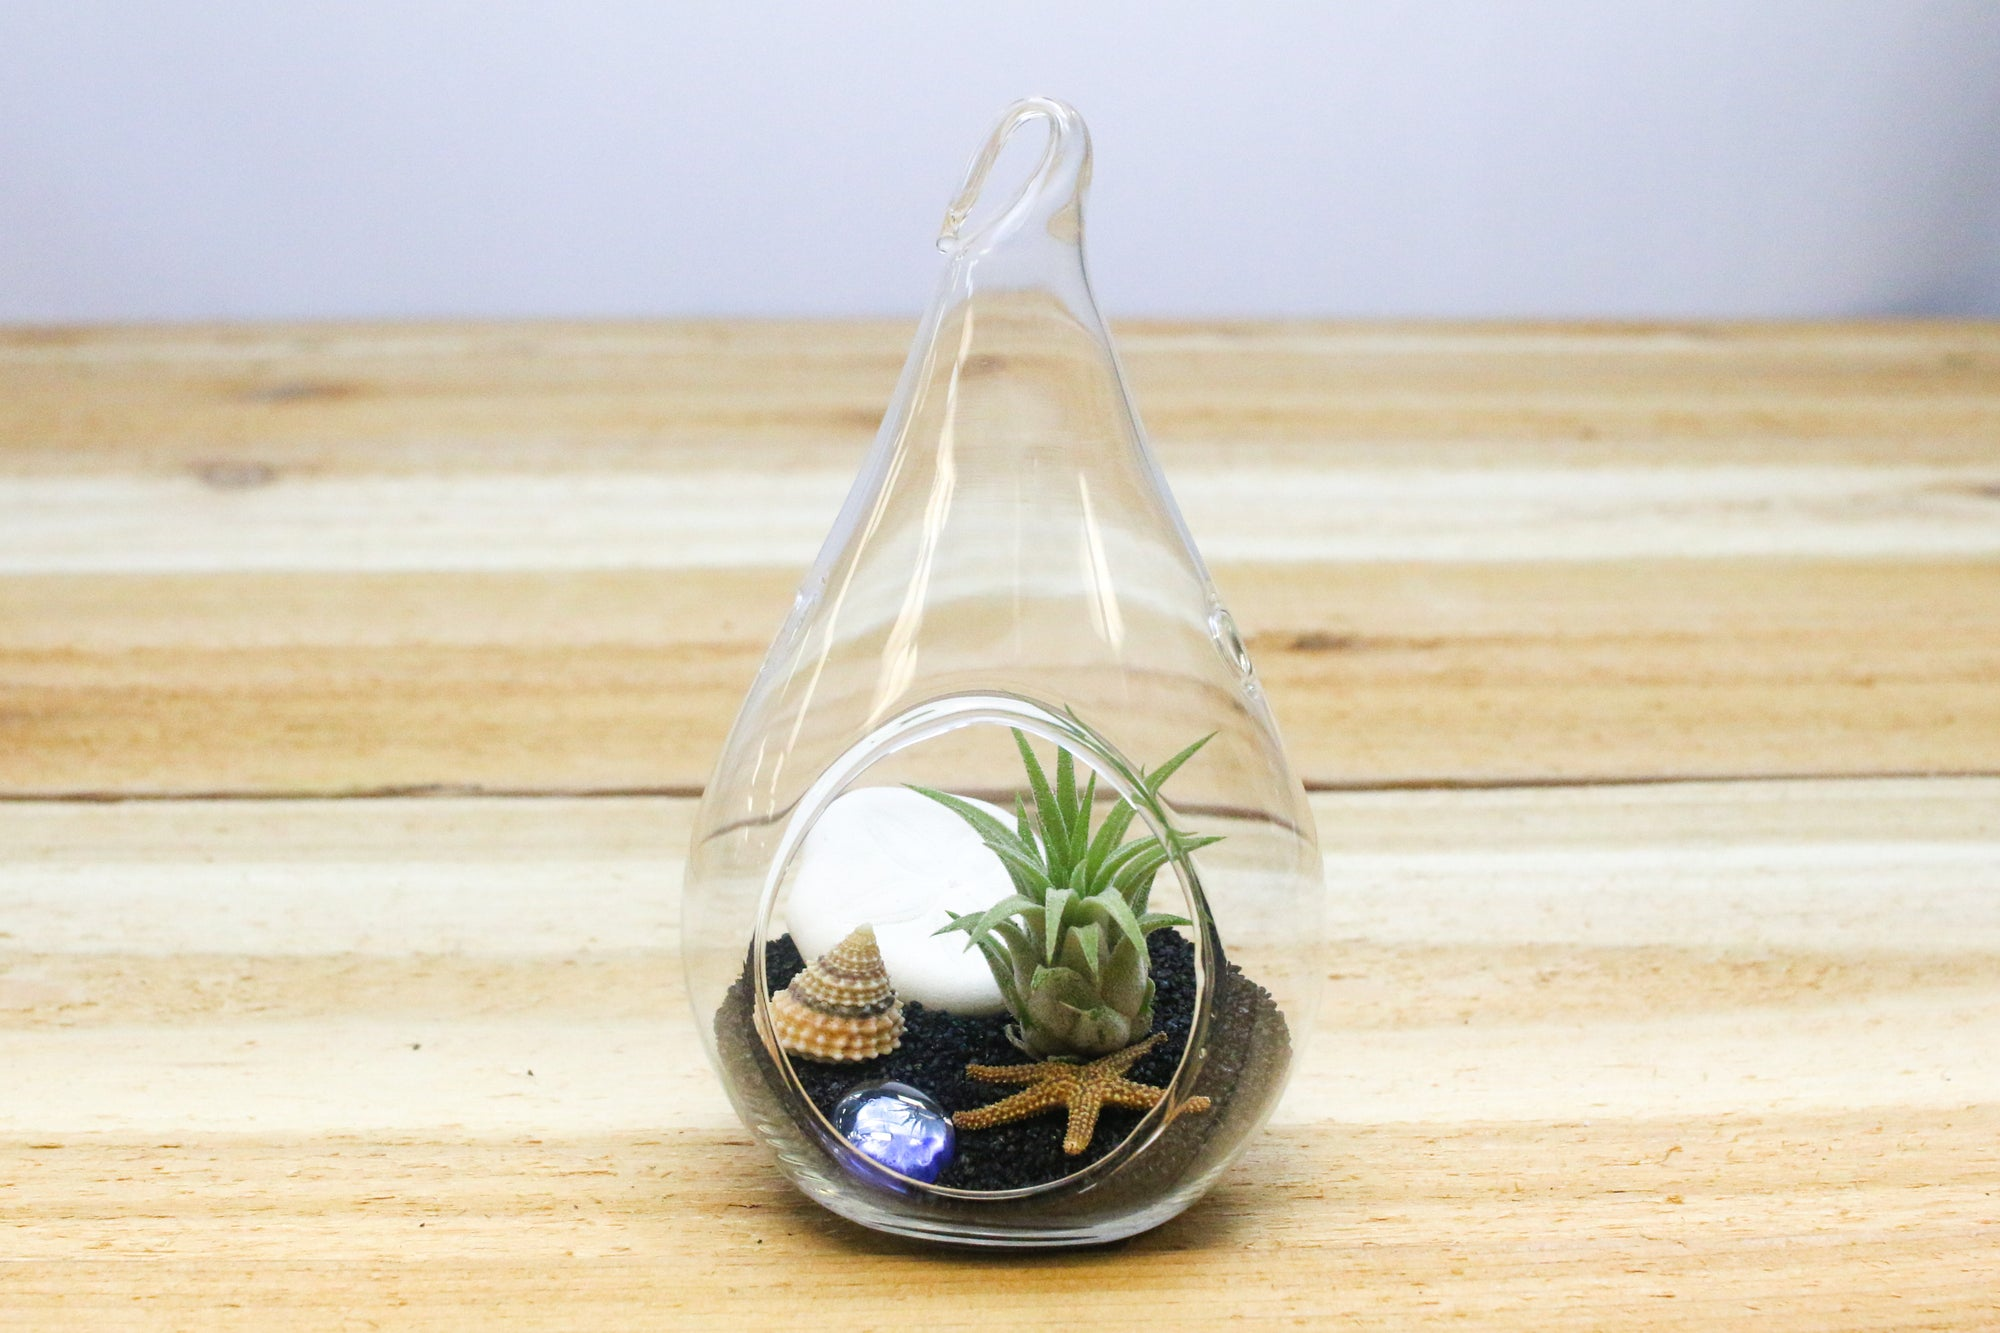 Wholesale: Teardrop Black Beach Terrarium with Air Plant [Min Order 12] from AirPlantShop.com